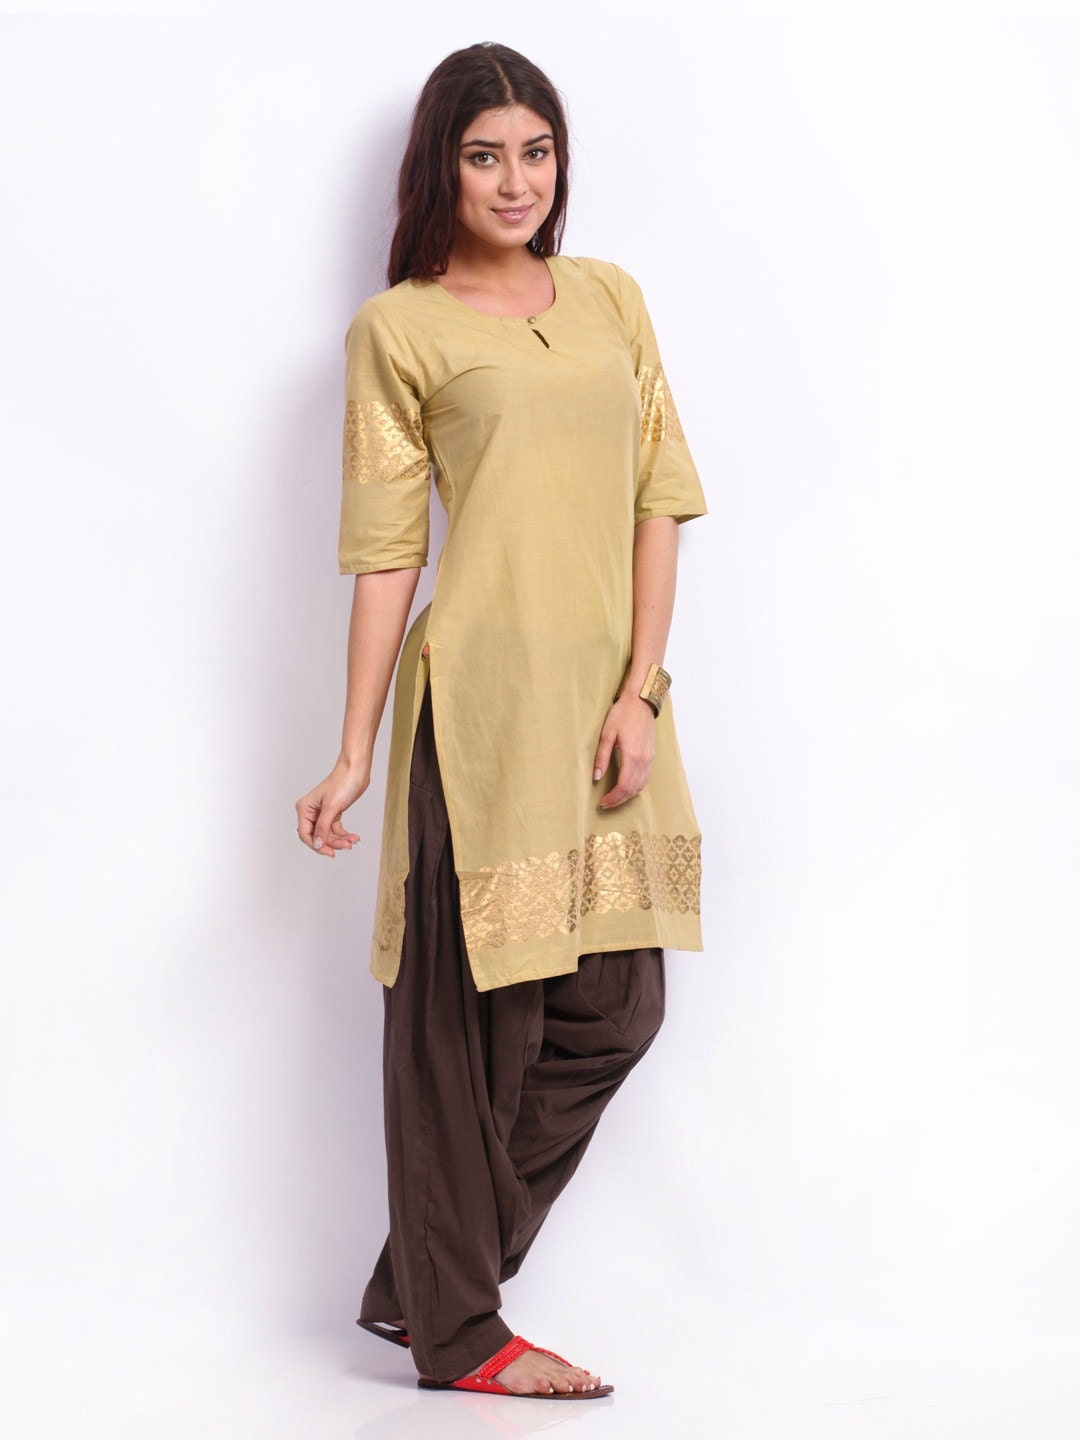 Cool You Can Make The Simple Kurti Look Festive This Way White Clothing For Women Has So Much To Do And Offer Buy Lovely Kurtis And Suits Online At Jabongcom When Your Mood Is To Go Desi! We Have A Lovely Range Of Kurtis, Suits, Anarkalis